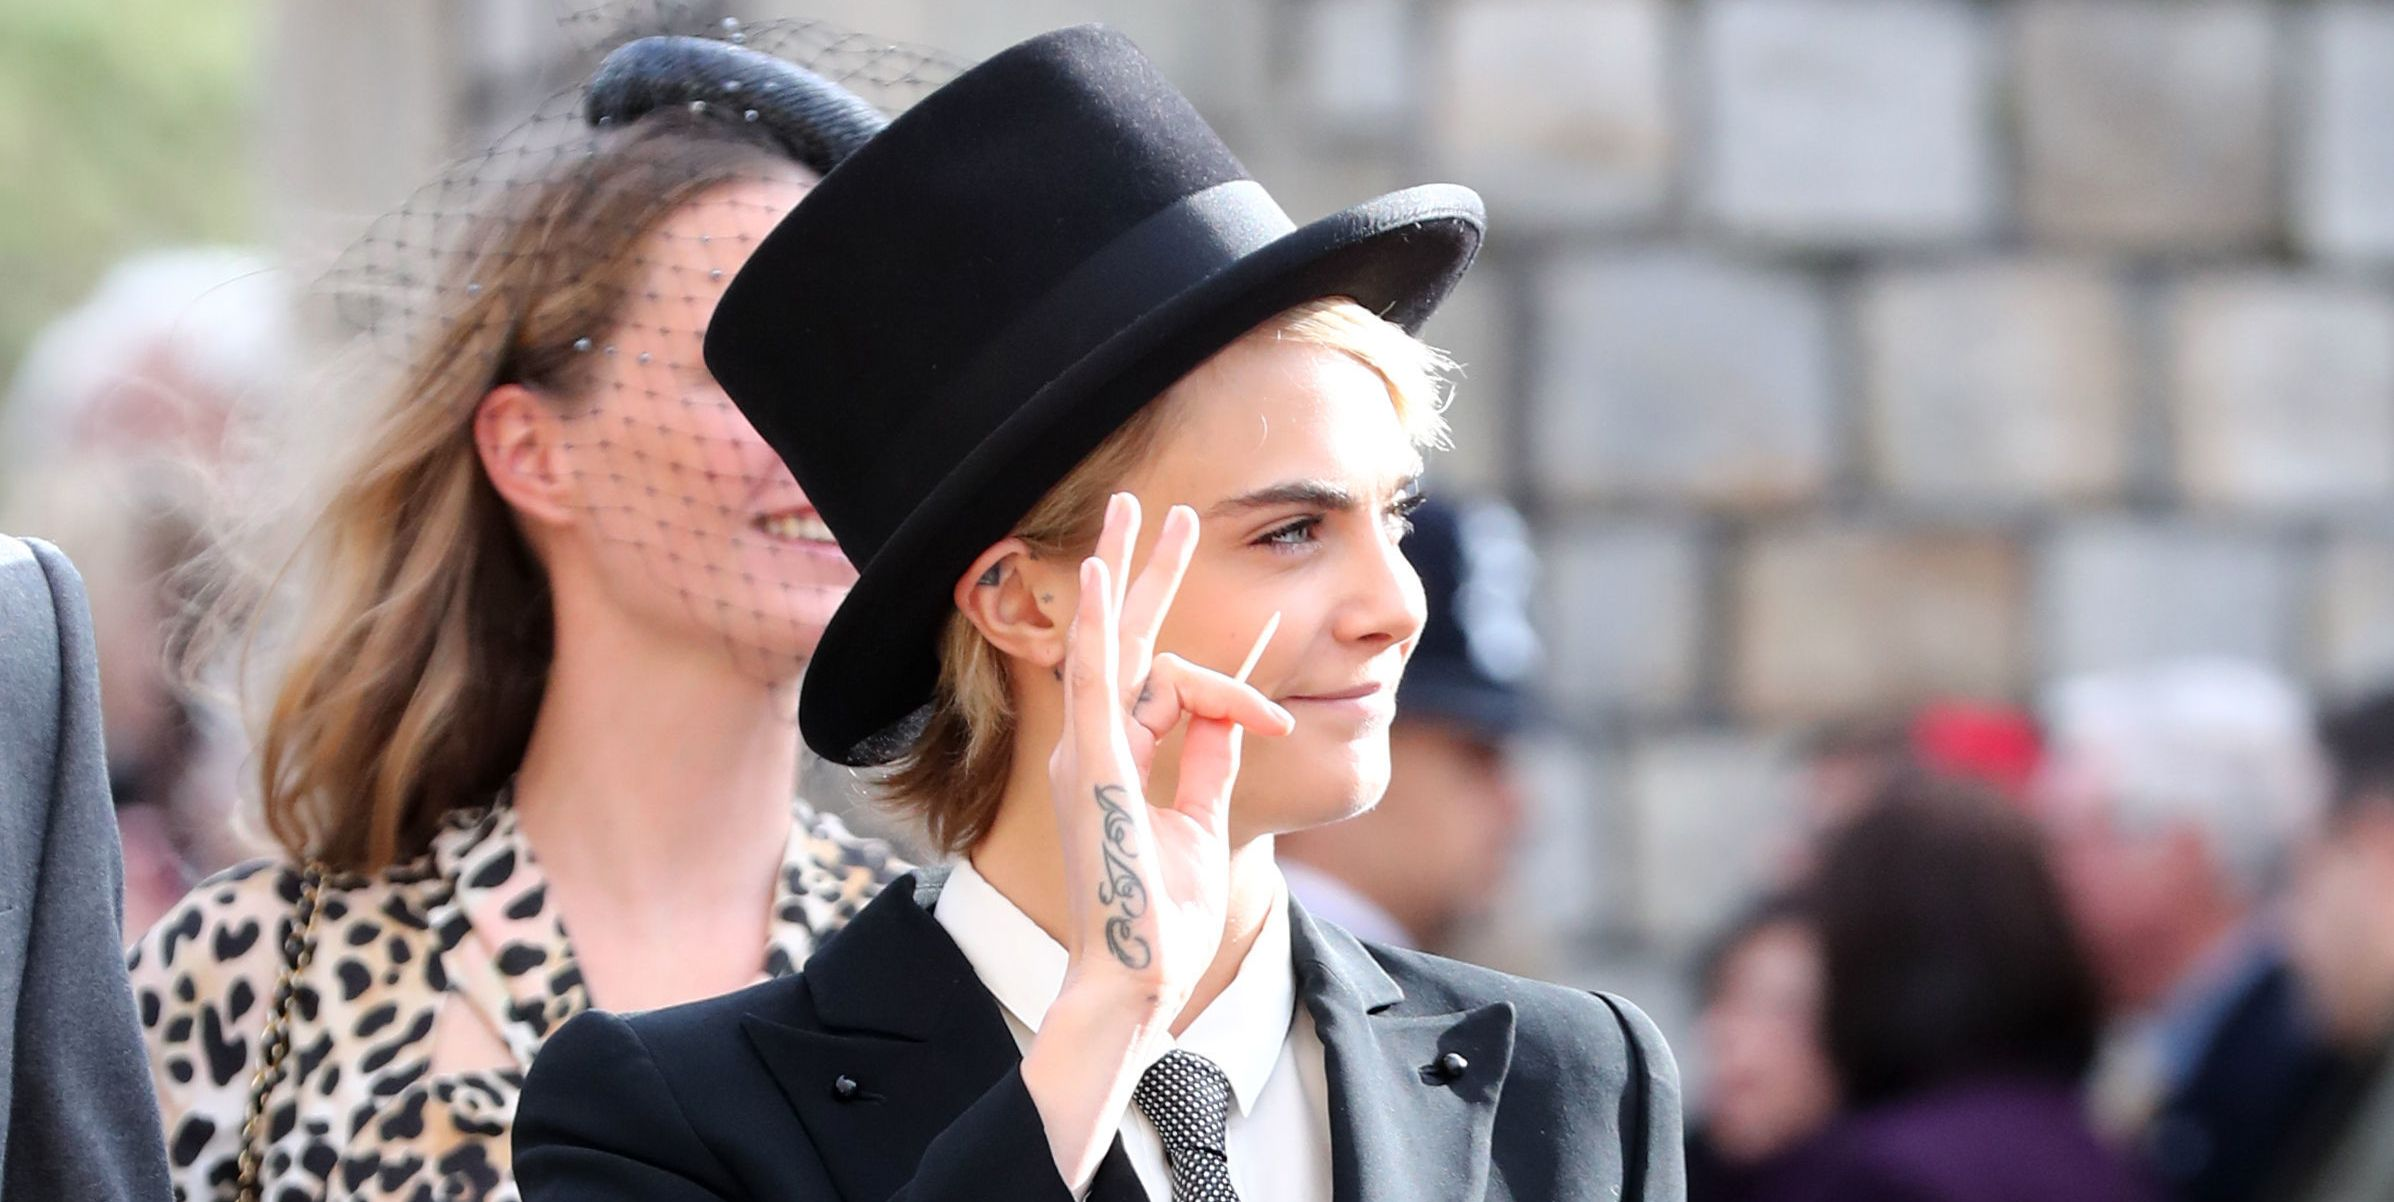 Cara Delevingne Wore a Dapper Suit and Top Hat to Princess Eugenie's Royal Wedding